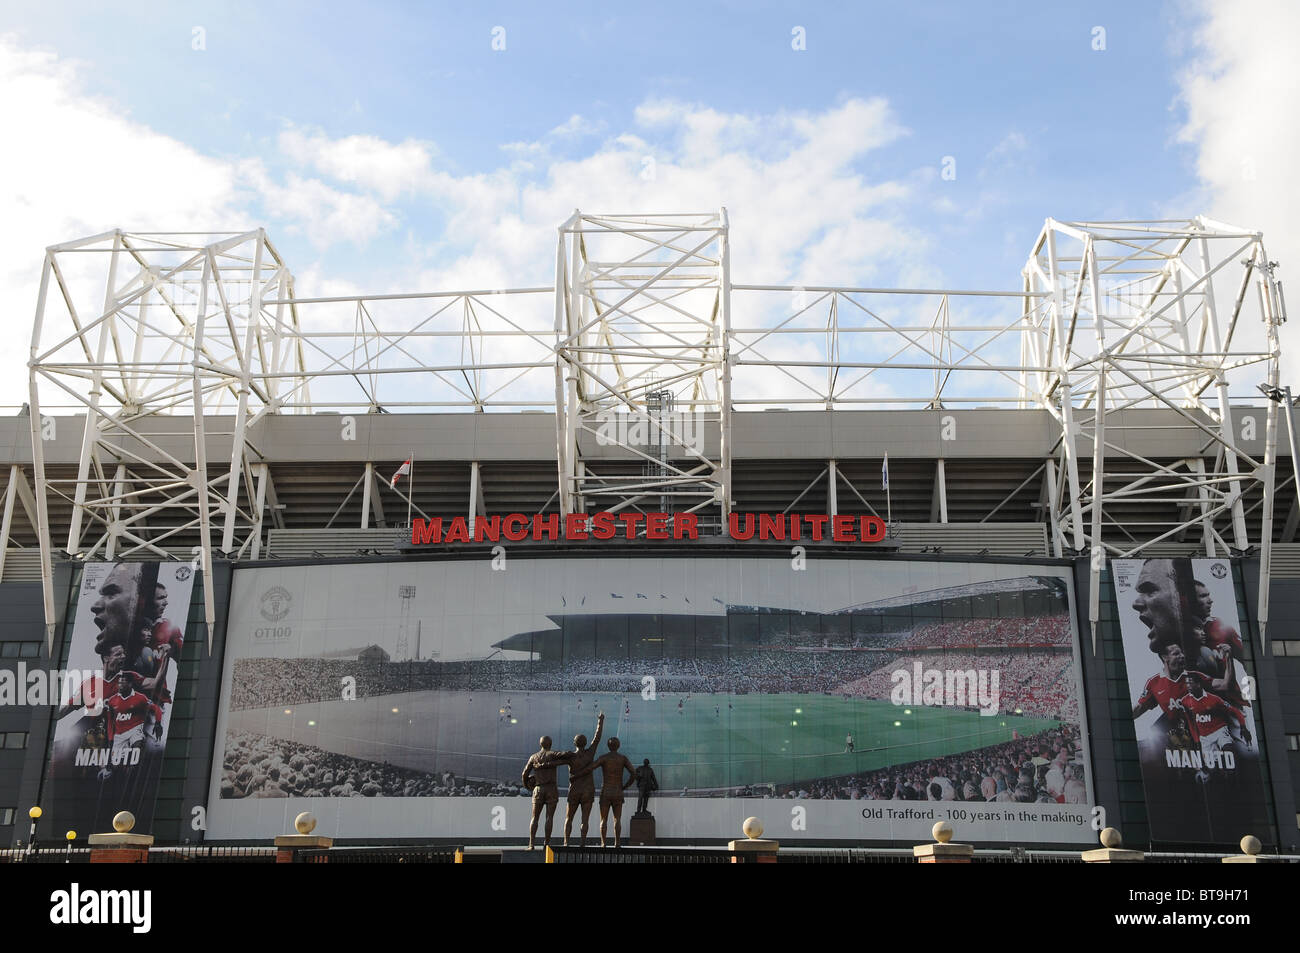 Old Trafford home to Manchester United Football Club - Stock Image